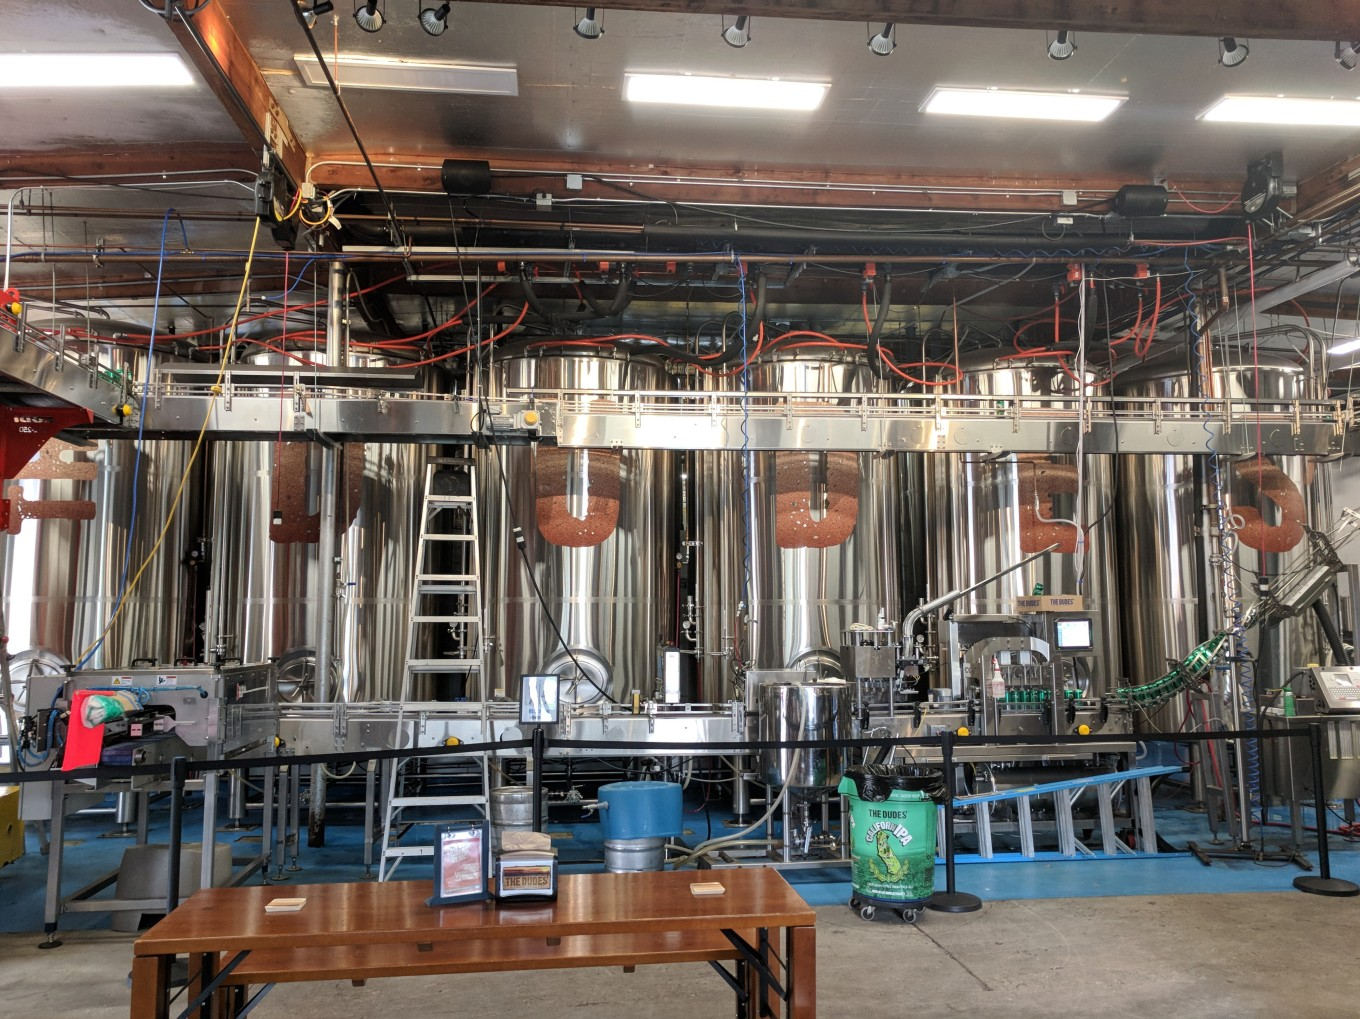 The Dudes Brewing Torrance bright tanks